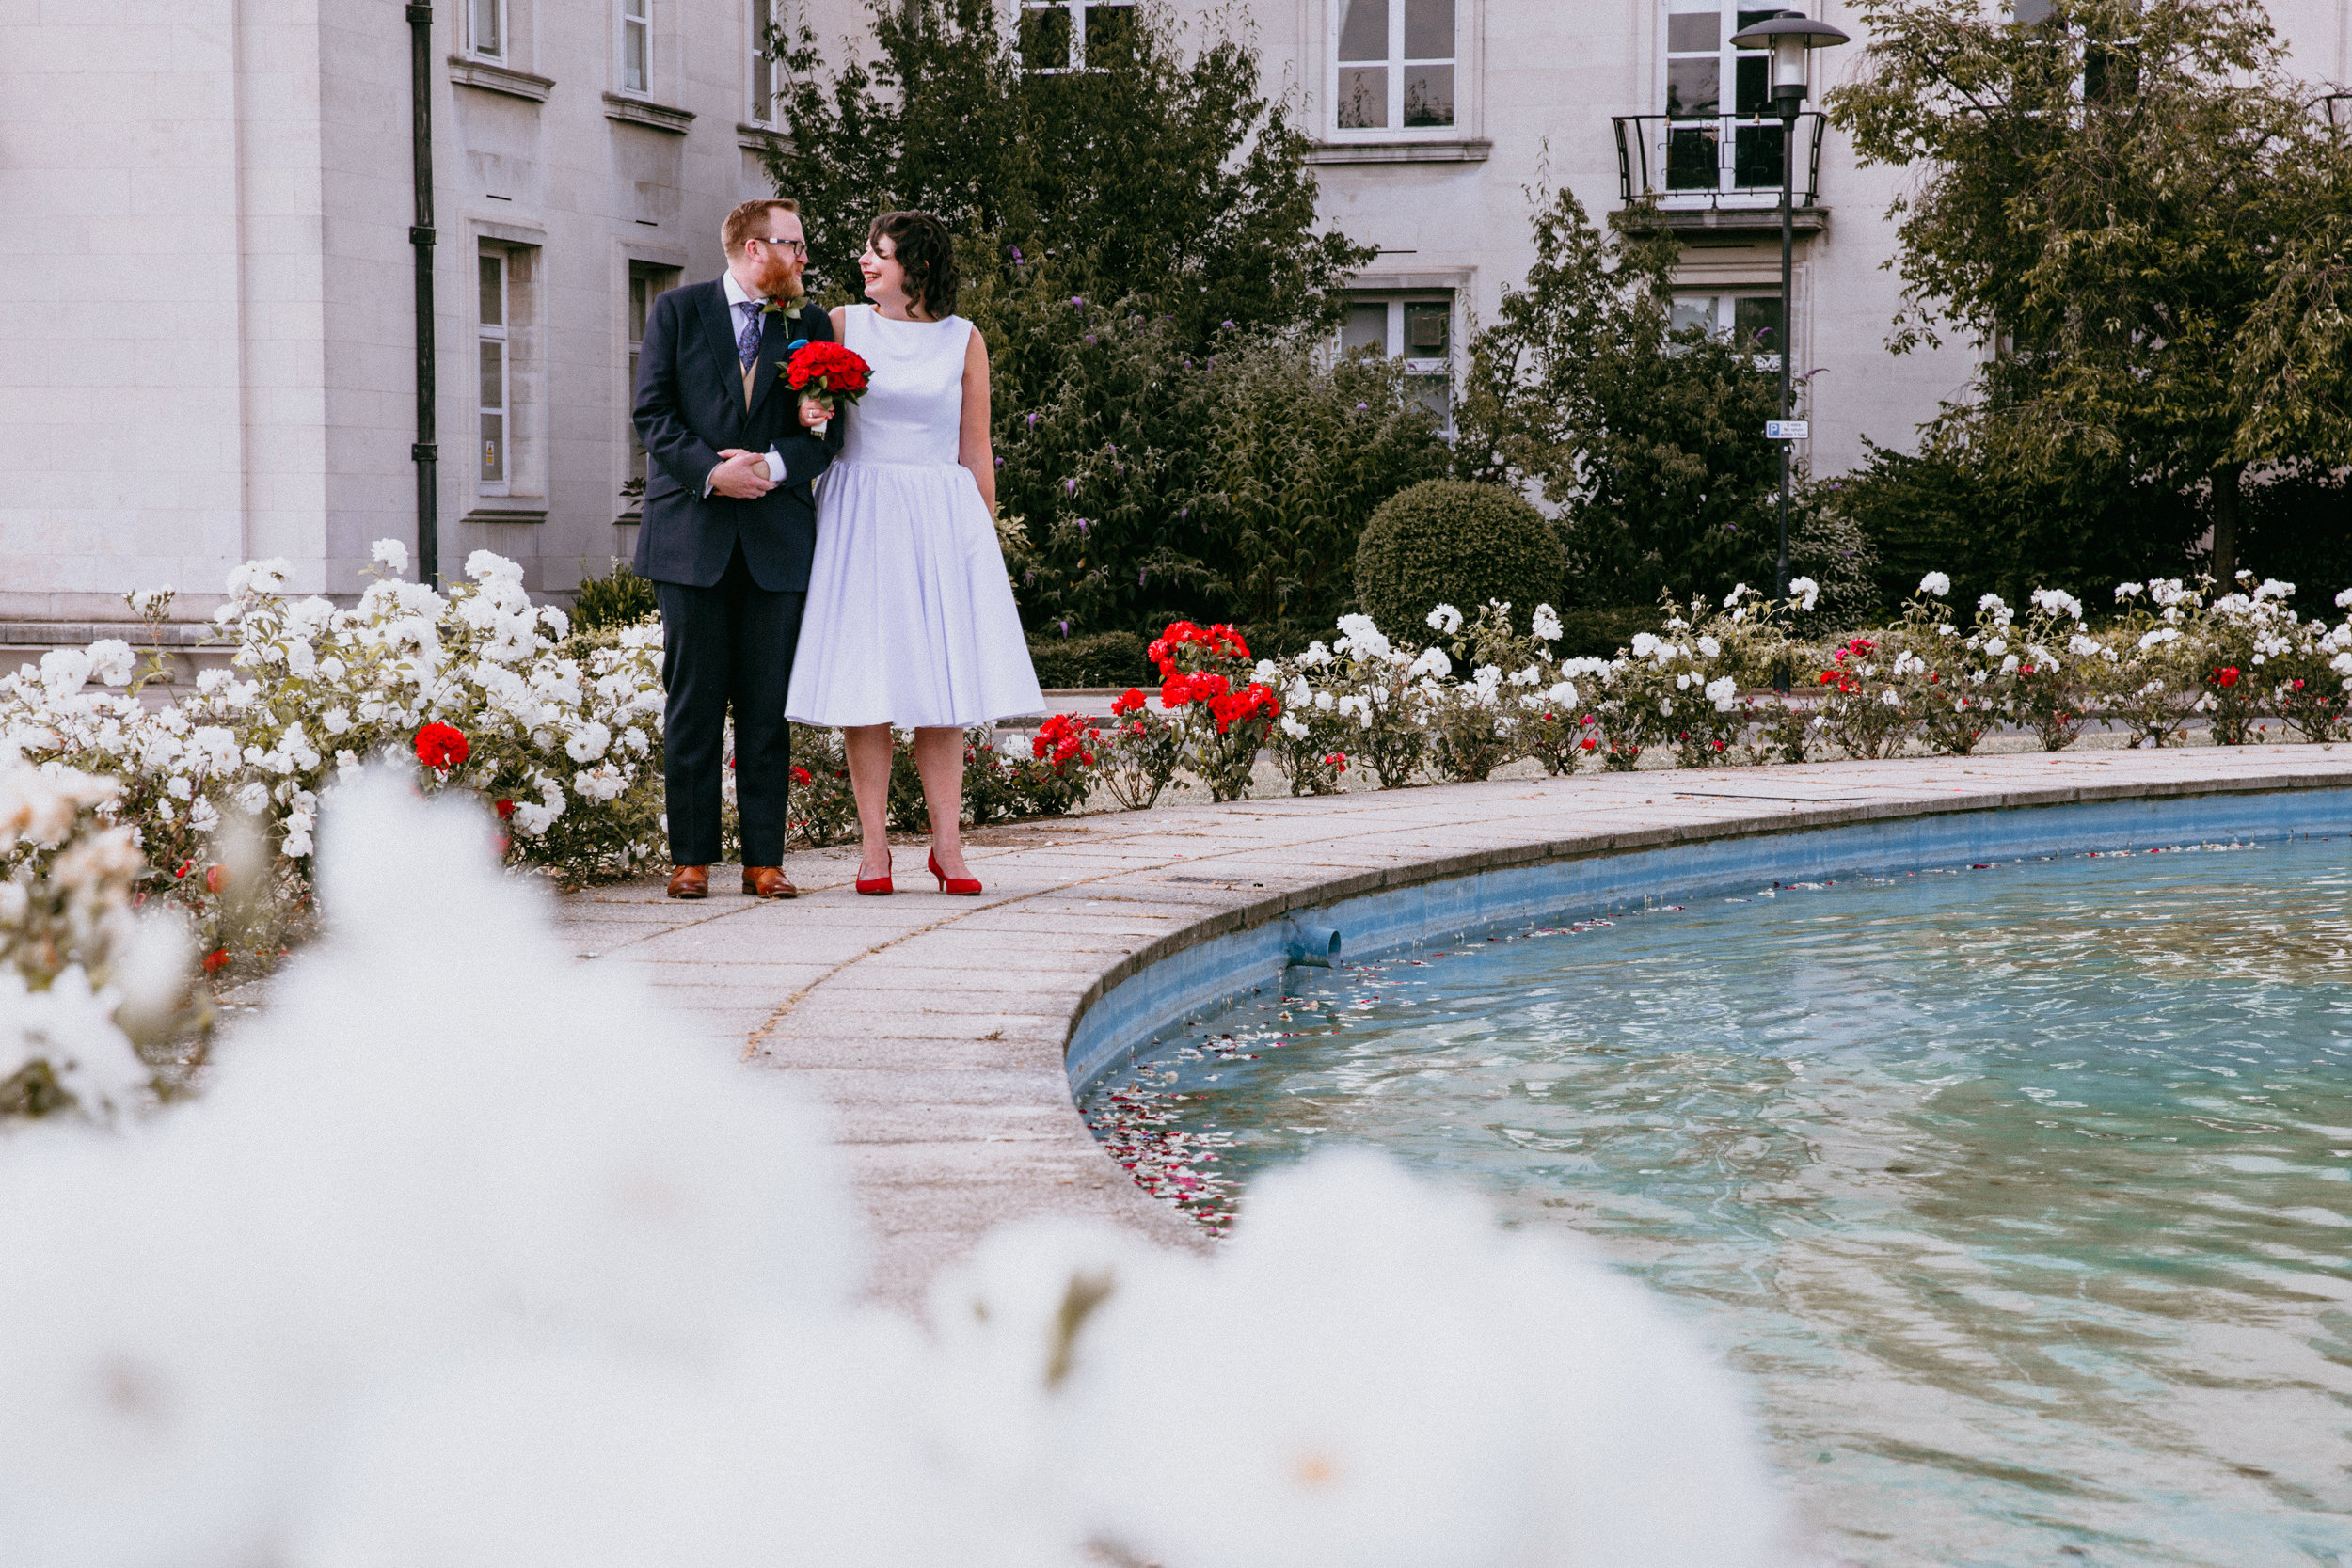 - 'Max was an absolute pleasure to have as part of our special day.  Having seen other photographers work I was worried that having all the photos done would disrupt the flow of it all but Max has a really sensitive manner and way of working with people that made it easy.'